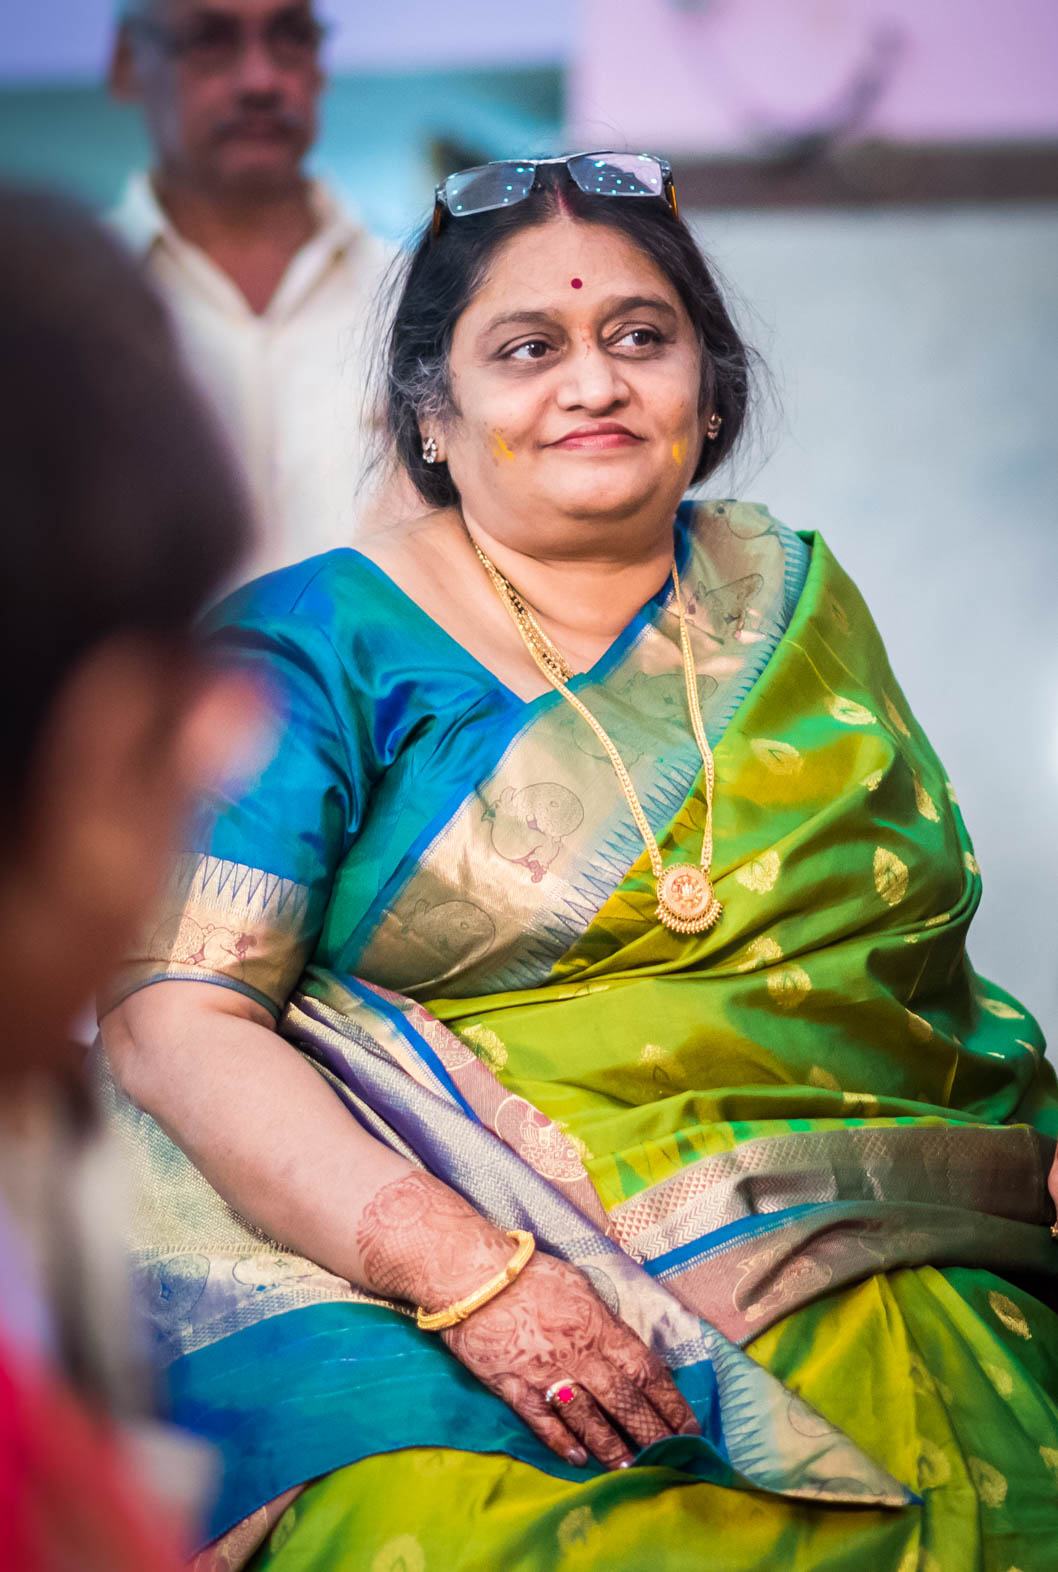 WhatKnot-Candid-Wedding-Photography-Mumbai-Bangalore-251